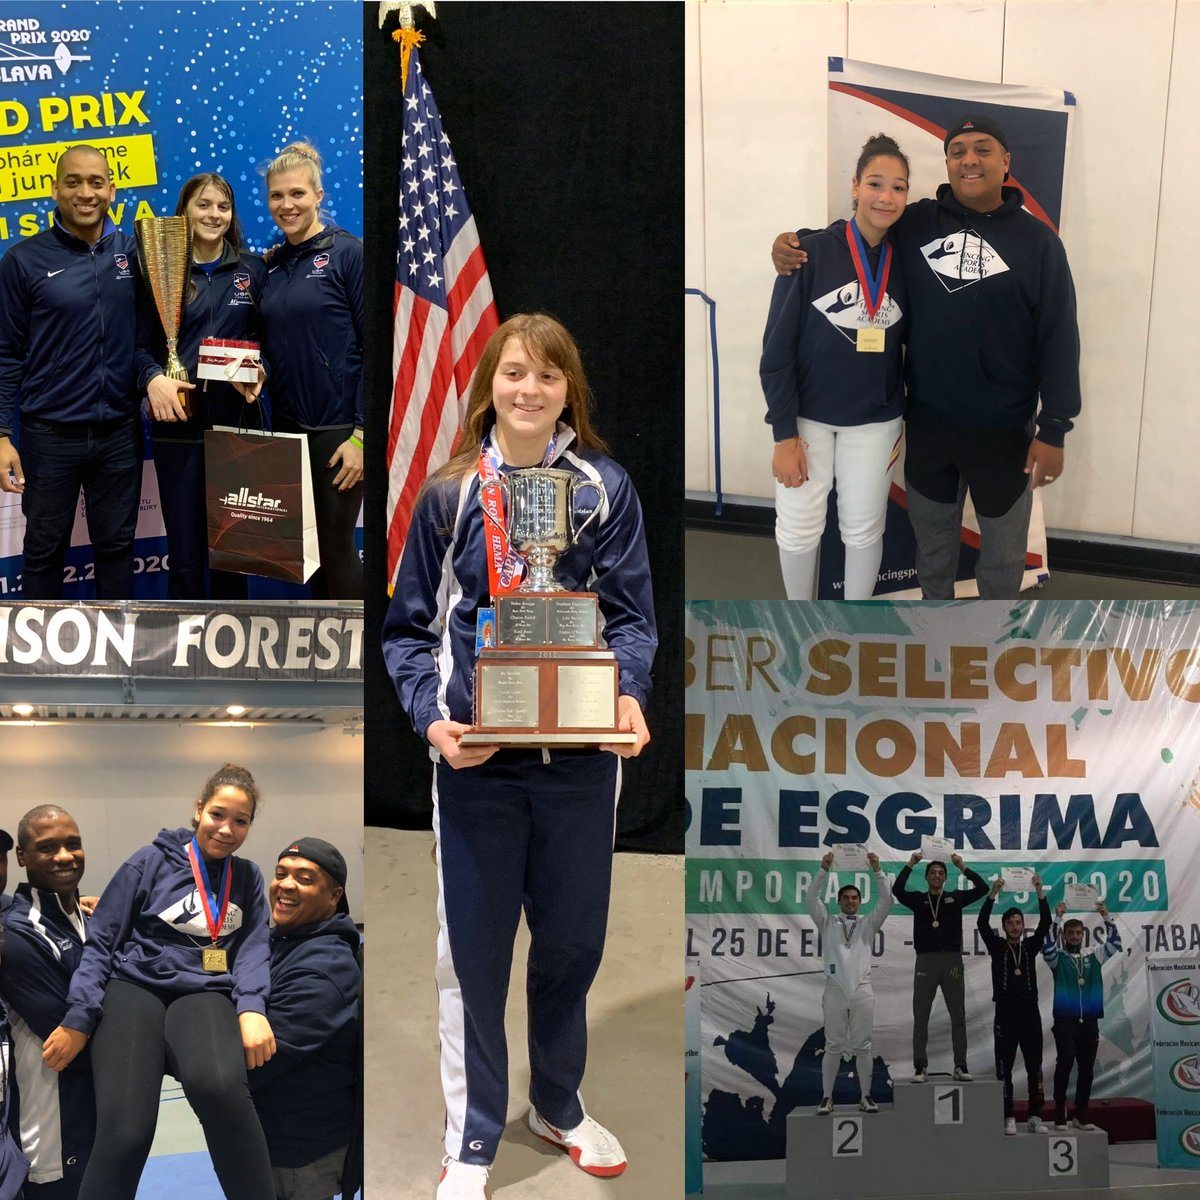 FSA is proud to announce that 3 of its fencers will be attending the Cadet and Junior World Championship in April in Salt Lake City! #competition #fencingsports #fencingtime #fairfax #USFA #fairfax #fairfaxva #fairfaxcountypic.twitter.com/pKEWyl6958